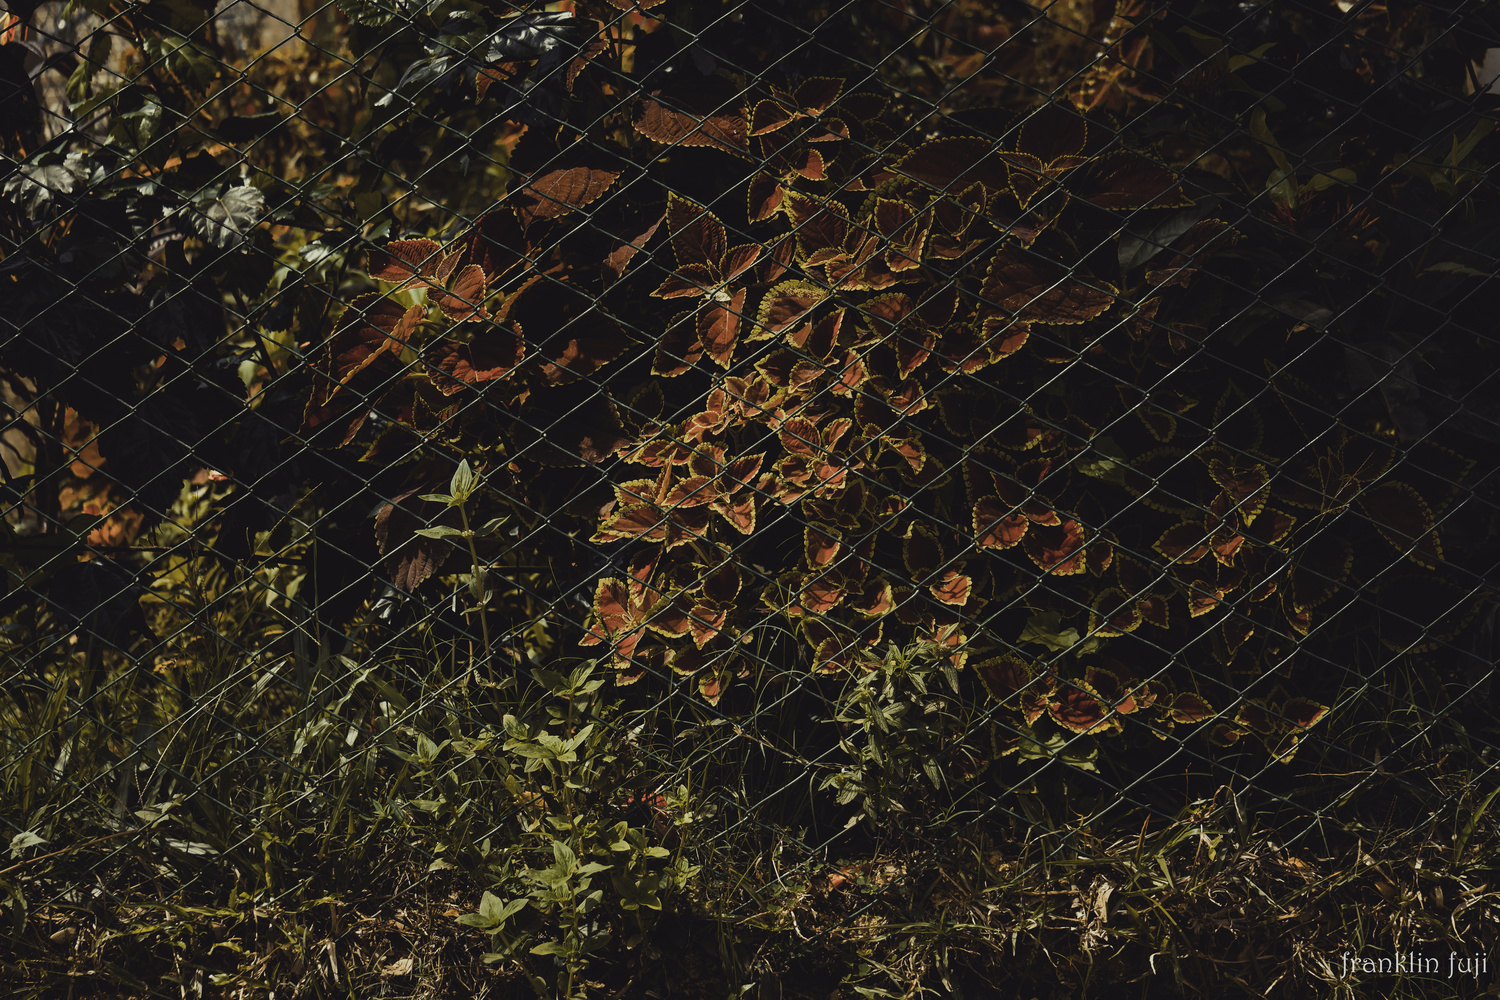 The fences we built by Franklin Biswas